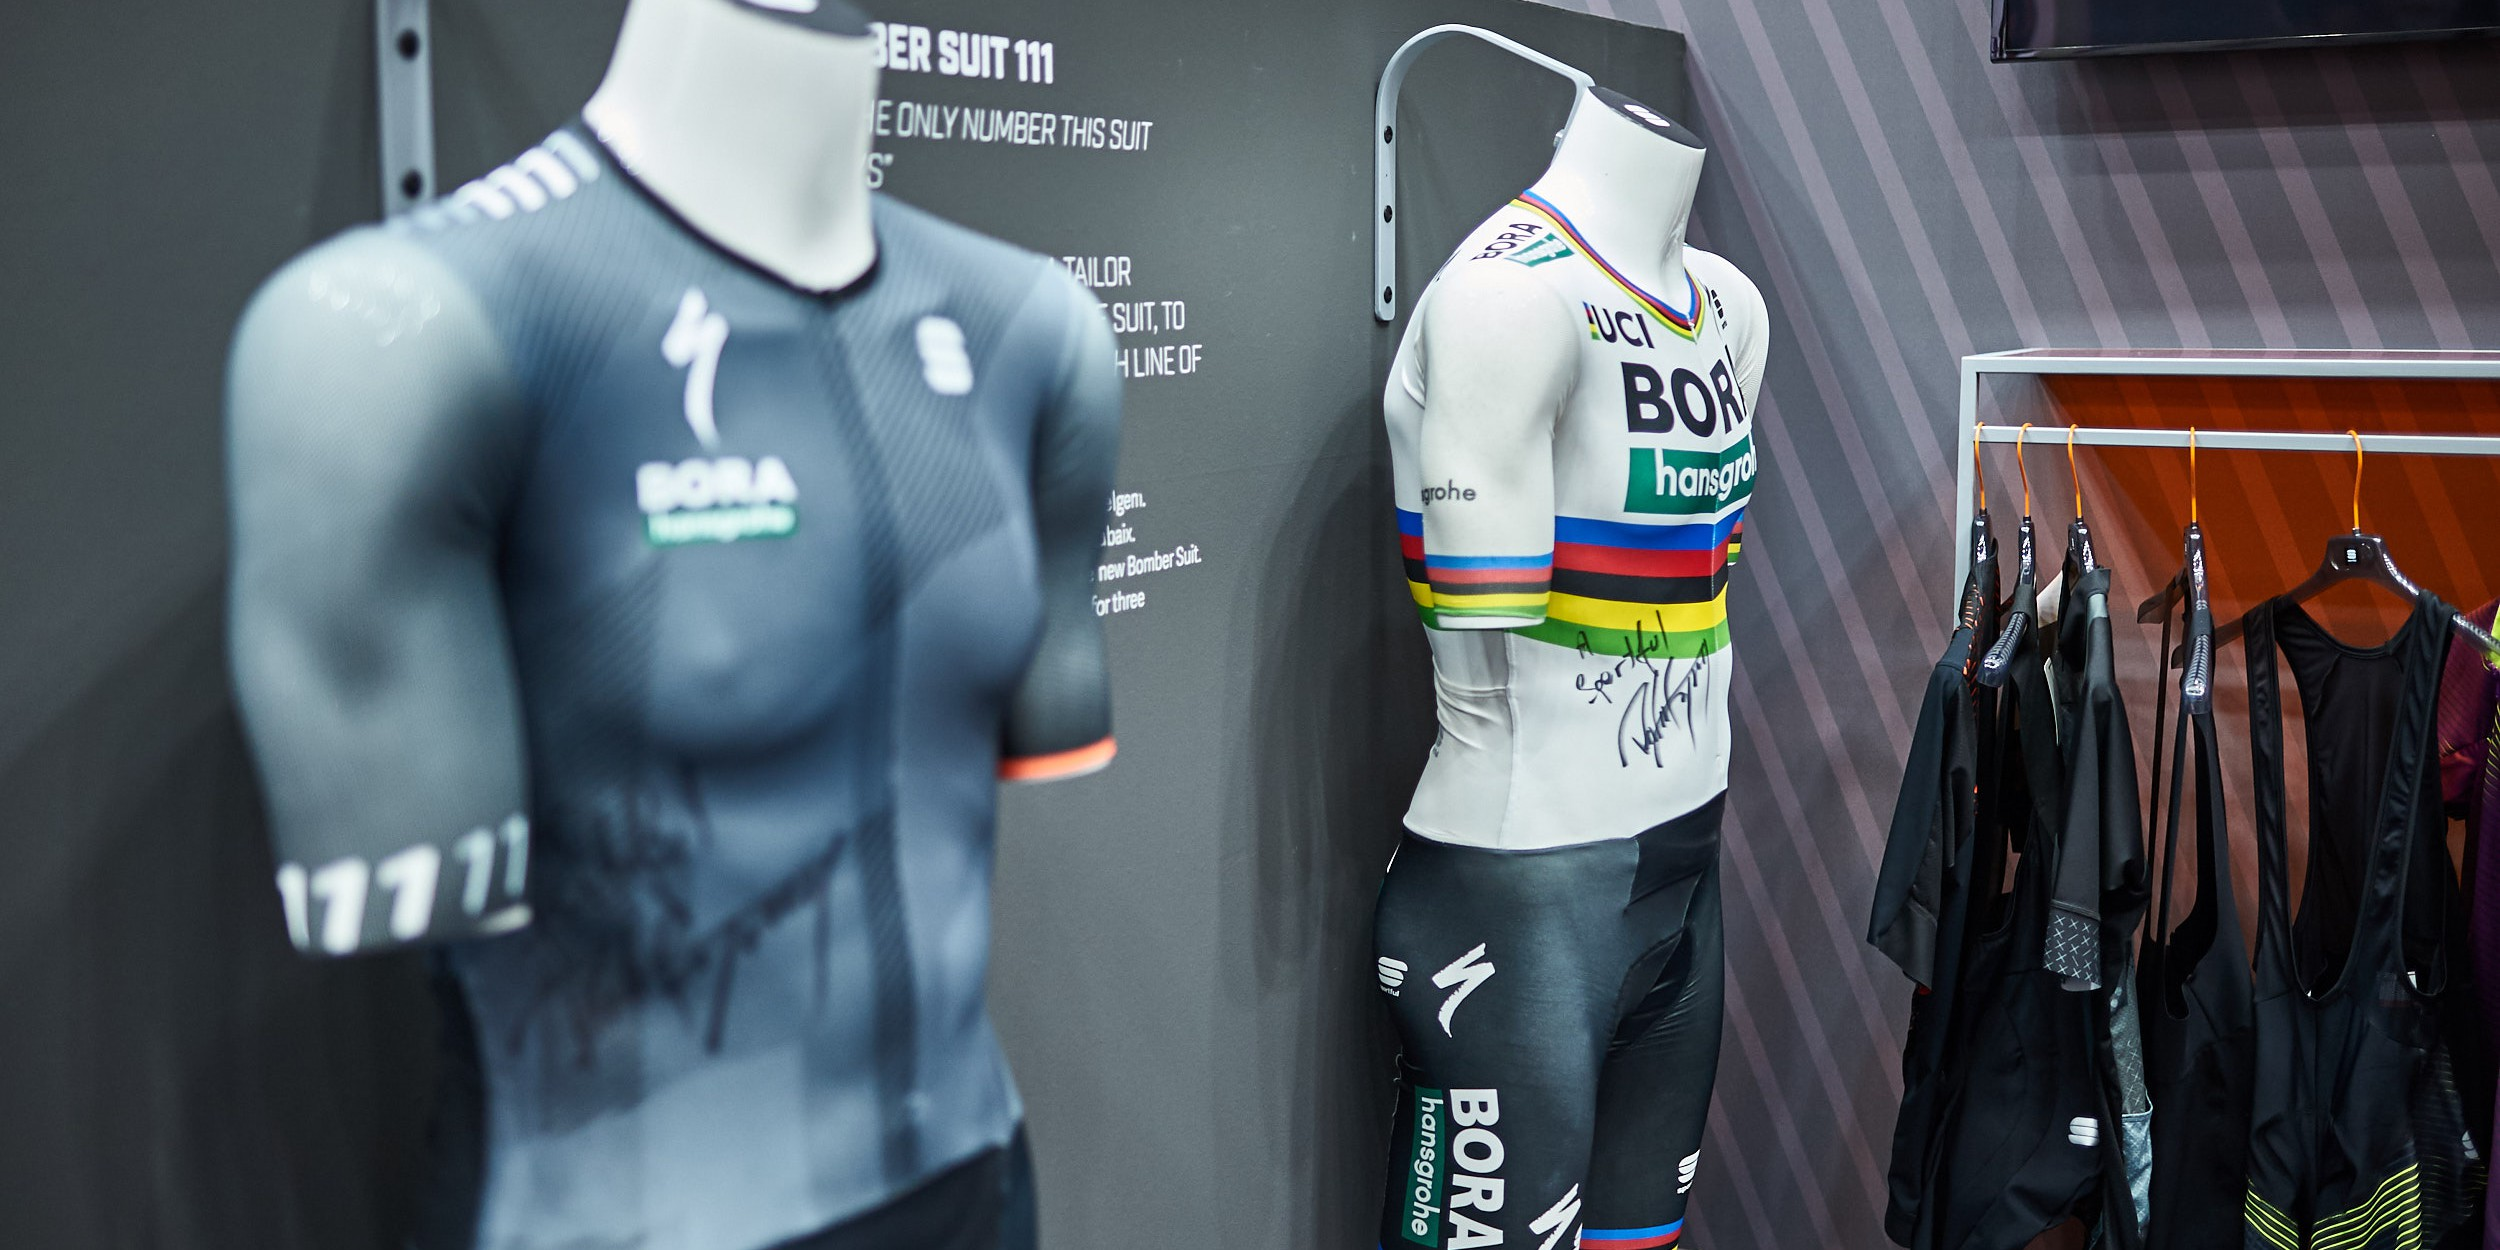 SPORTFUL Bomber Suit 111 & Supergiara 2019